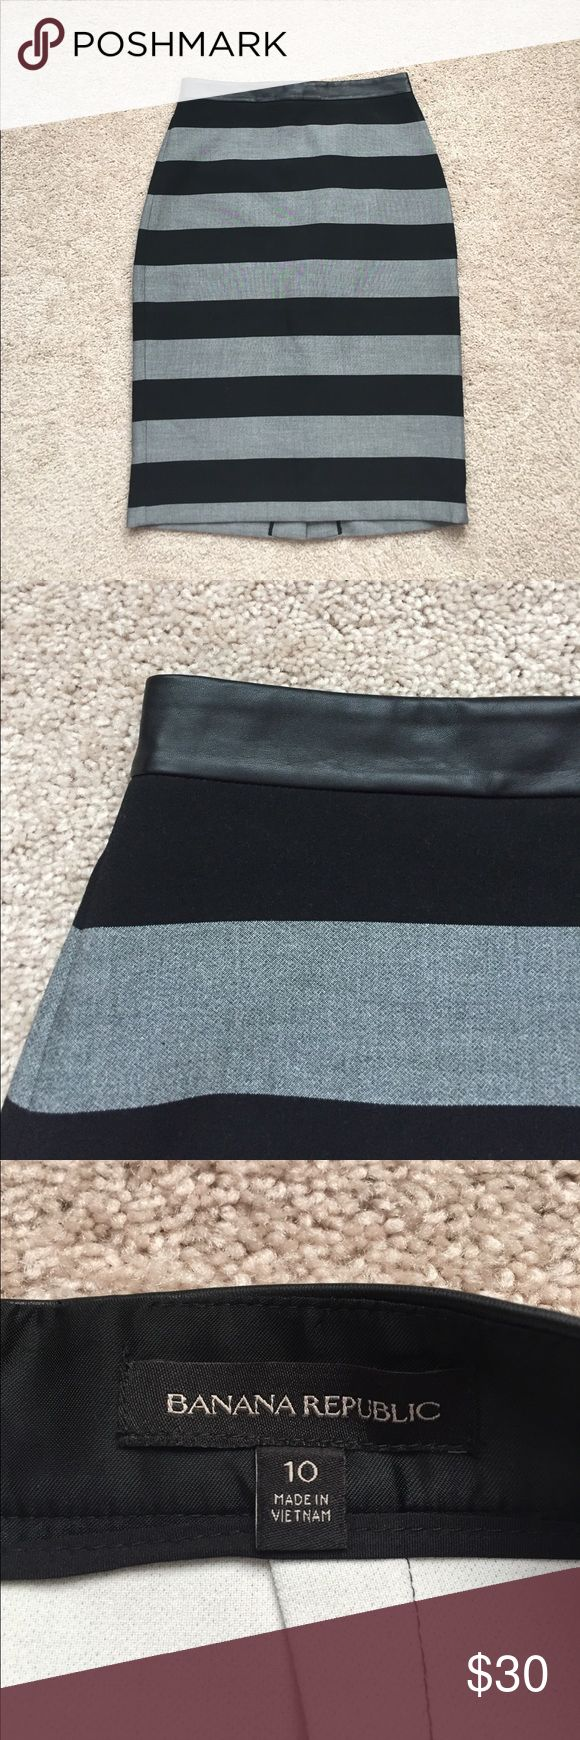 "Banana republic black and gray pencil skirt sz 10 Excellent condition black and gray striped pencil skirt with faux leather waistband ! Zips in back and sits high waisted. Waist measures 15.5""and length is 26.5"" Banana Republic Skirts Pencil"